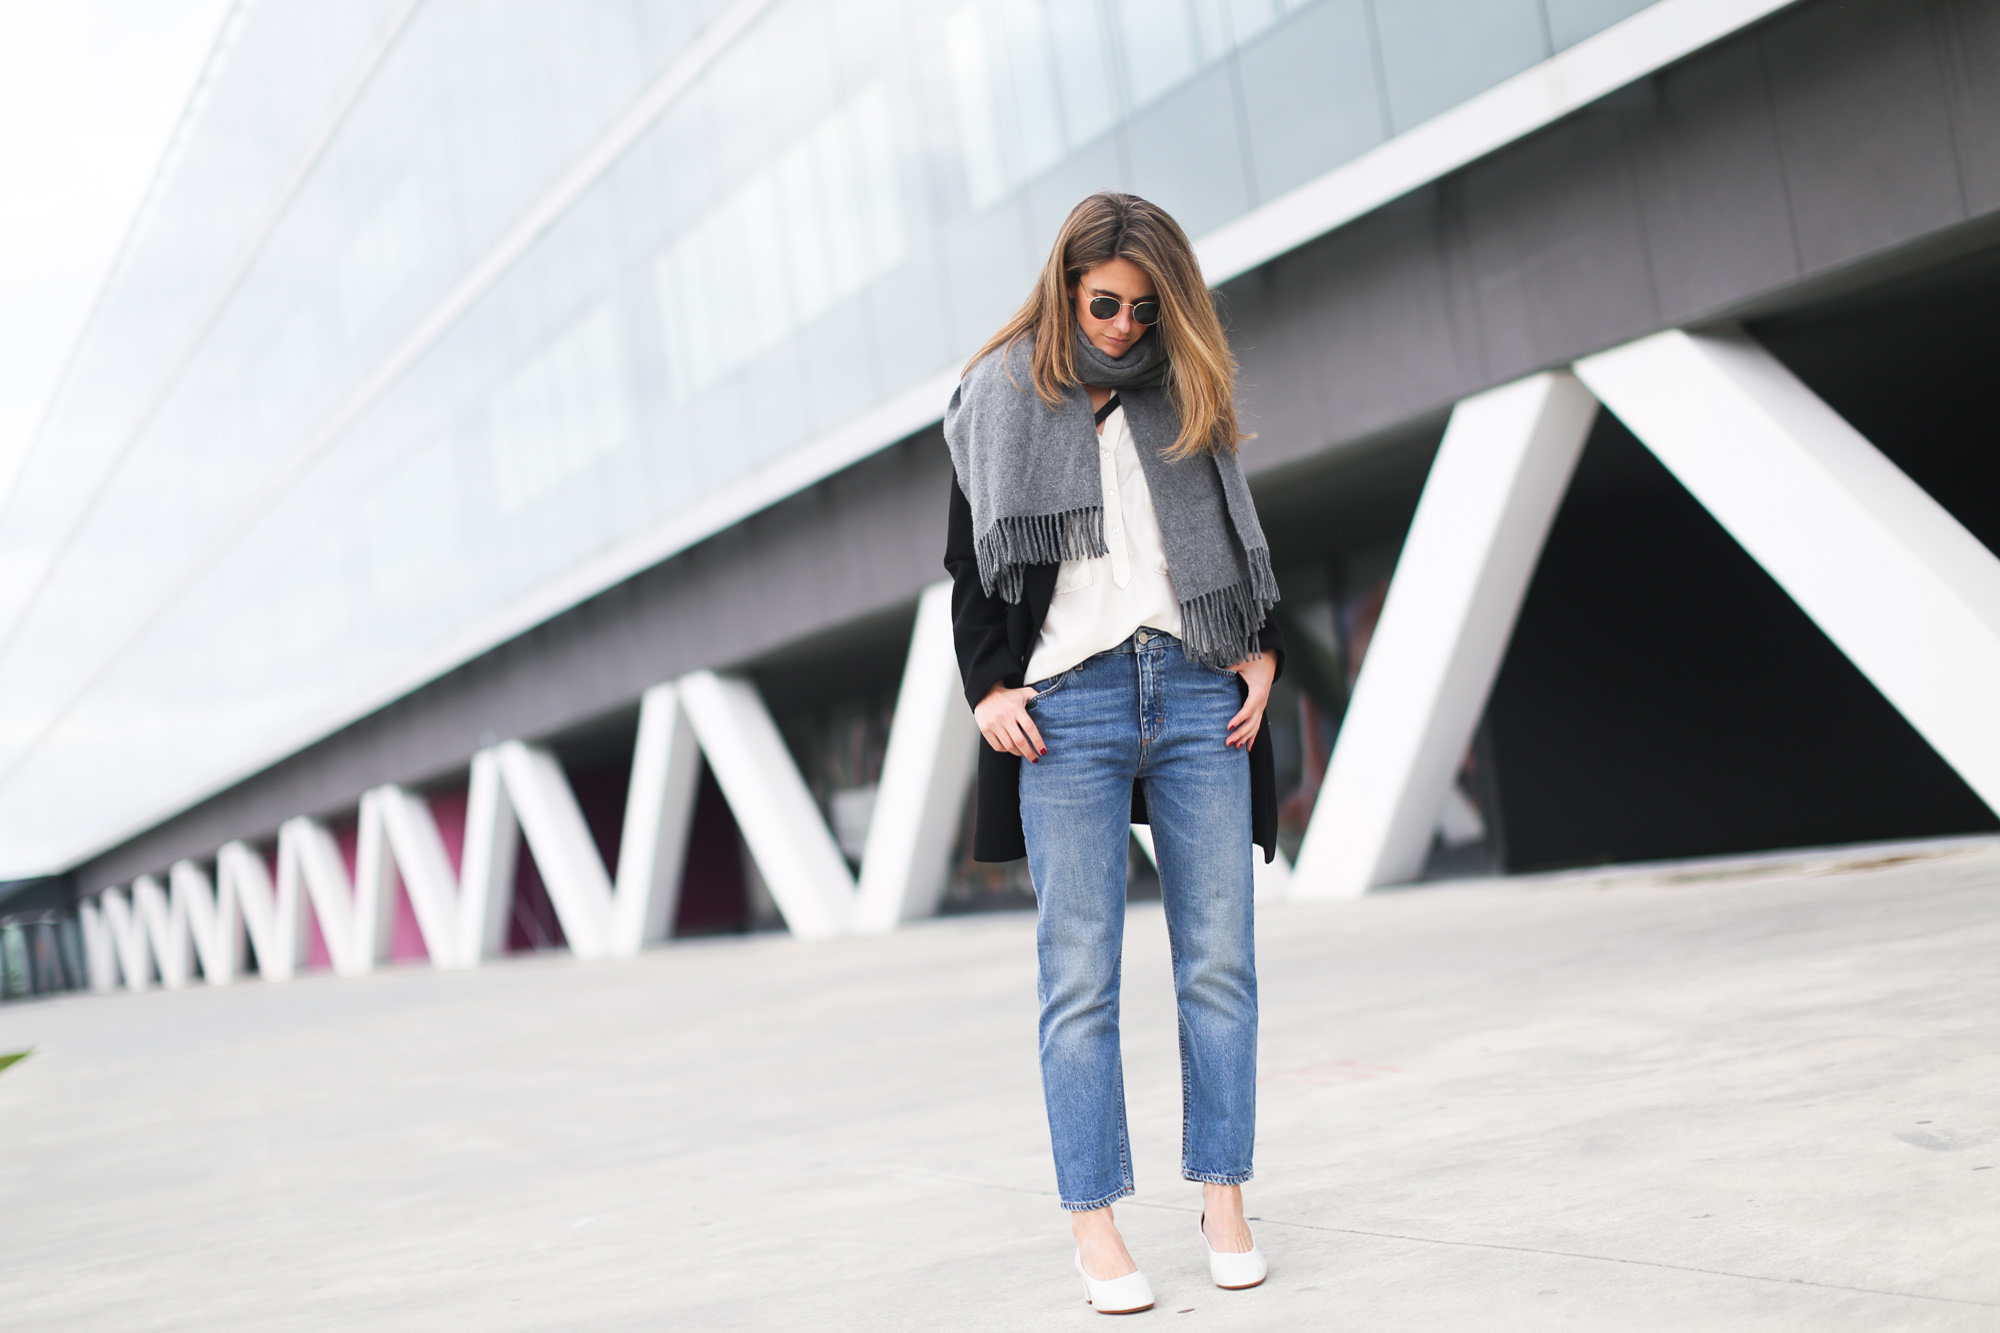 clochet_streetstyle_acnestudios_pop_jeans_mansurgavriel_bucket_bag_granny_shoes